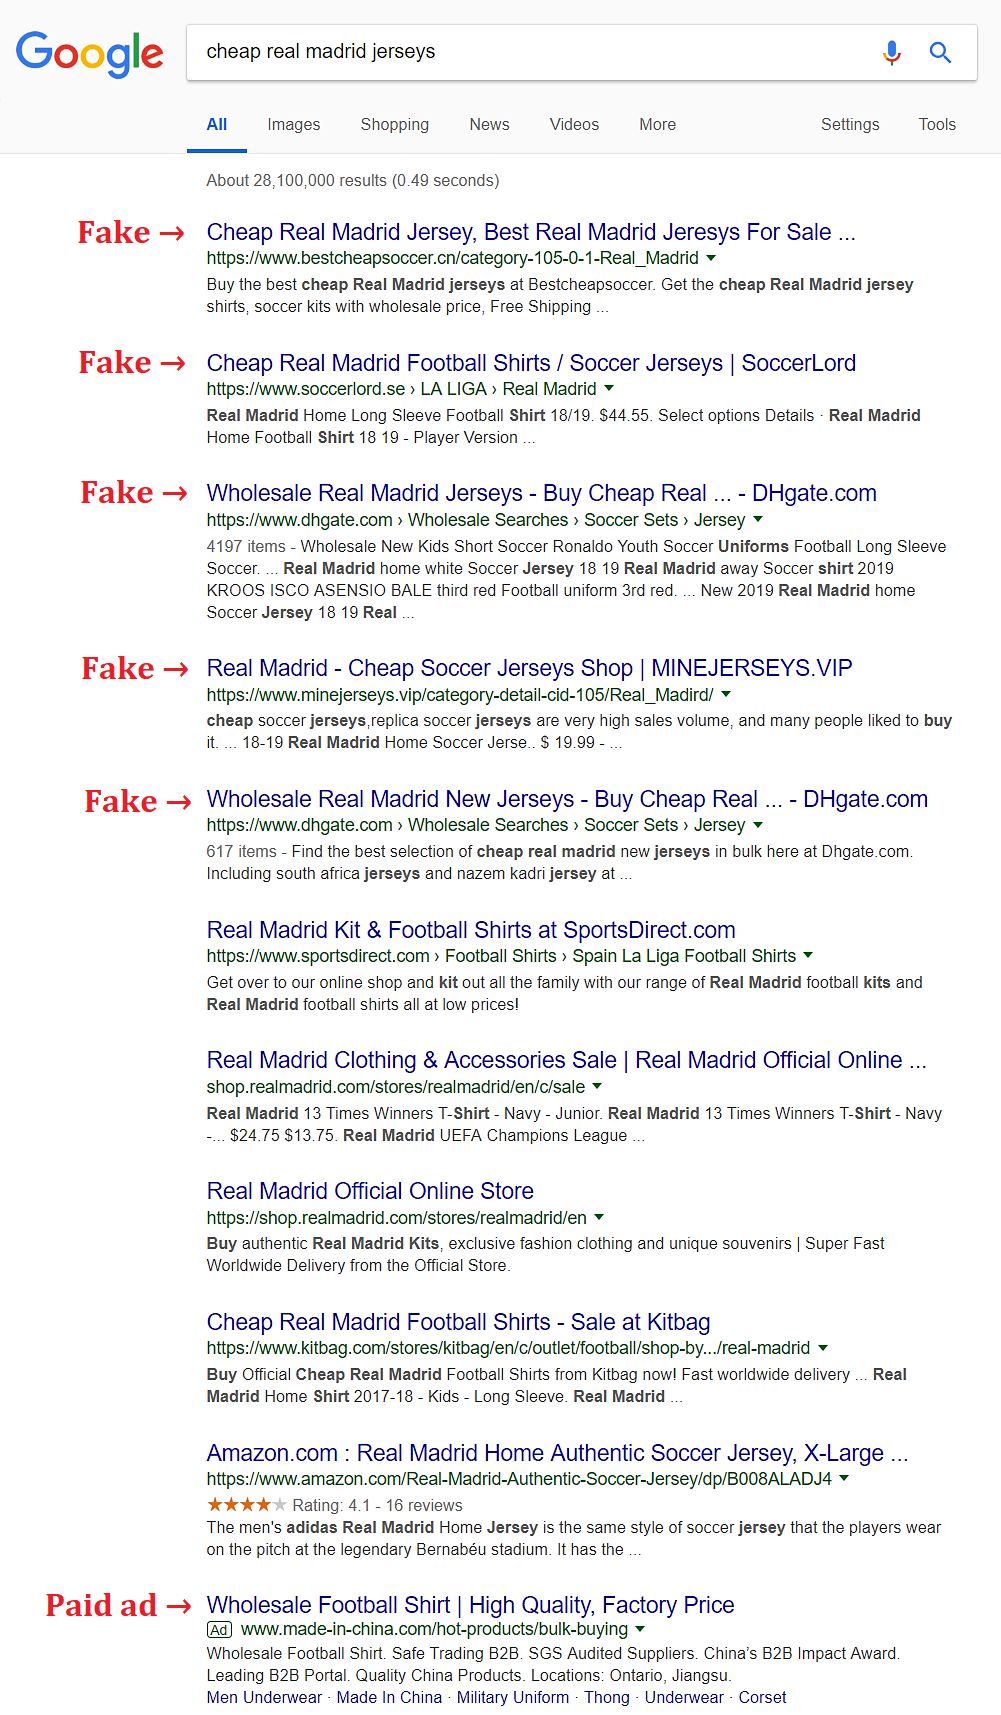 Google results page for cheap real madrid jerseys with listed counterfeits